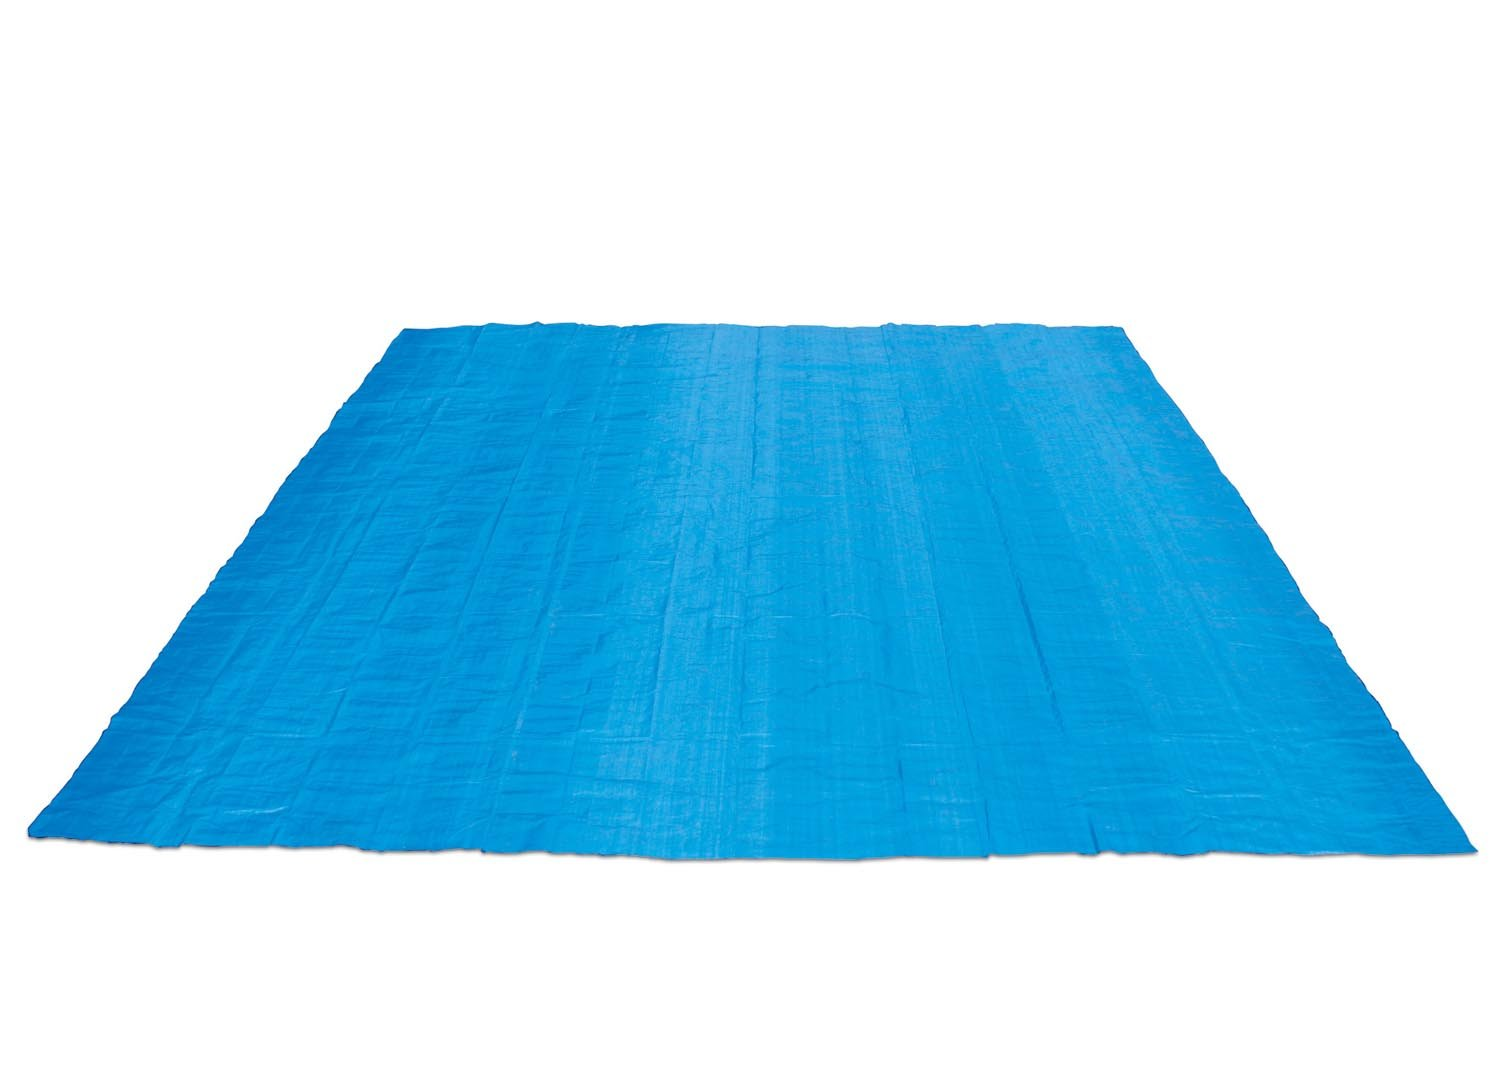 Summer Waves Groundsheet 391 x 391 Soil film for Quick Up Pool Swimming pool